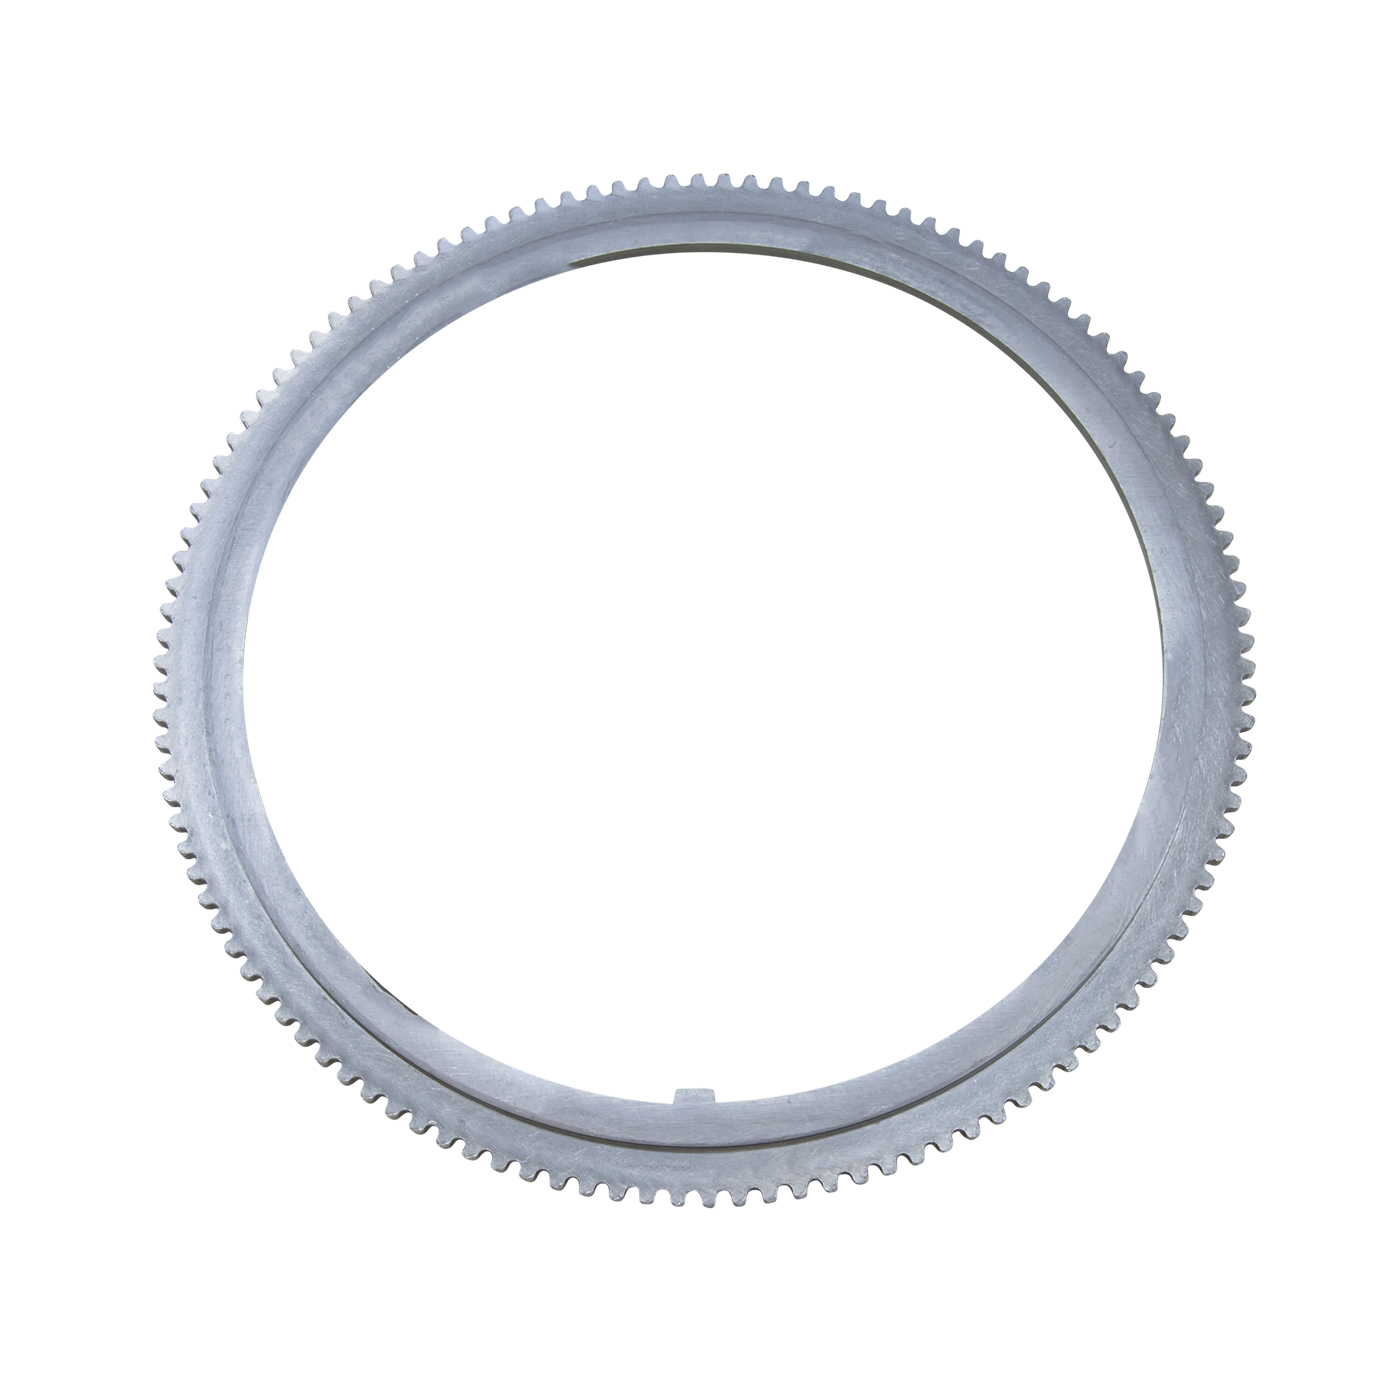 YSPABS-008 - Dana 80 ABS exciter tone ring.